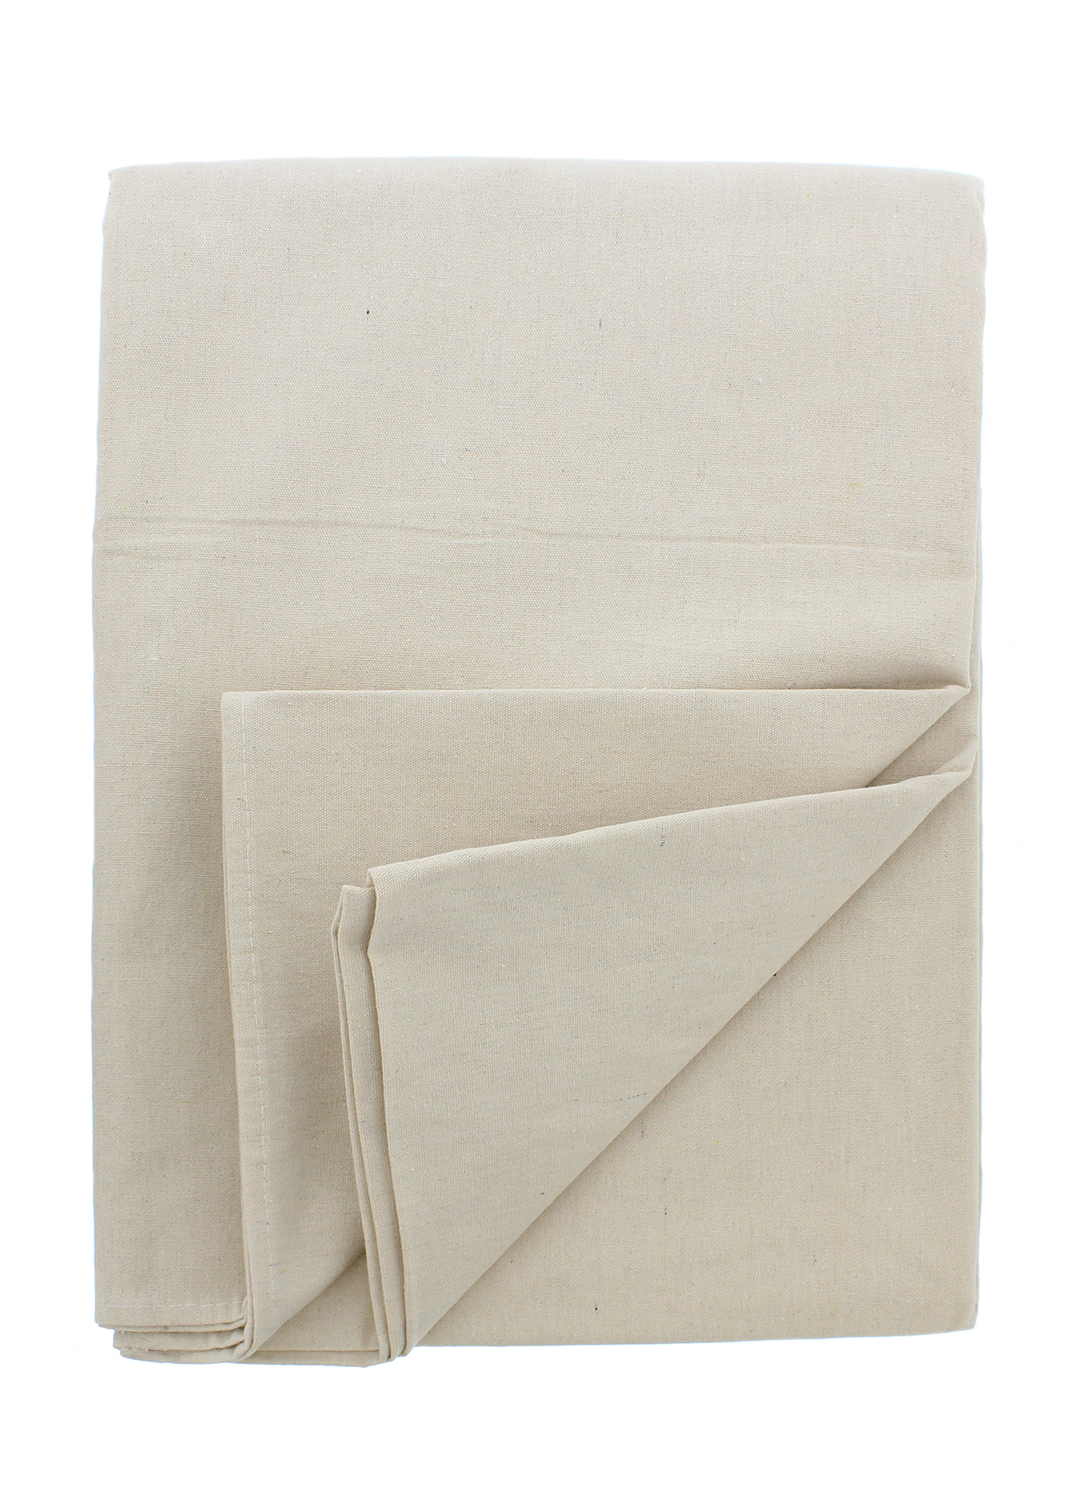 Abn Premium 9 39 X12 39 Foot Large Canvas Drop Cloth All